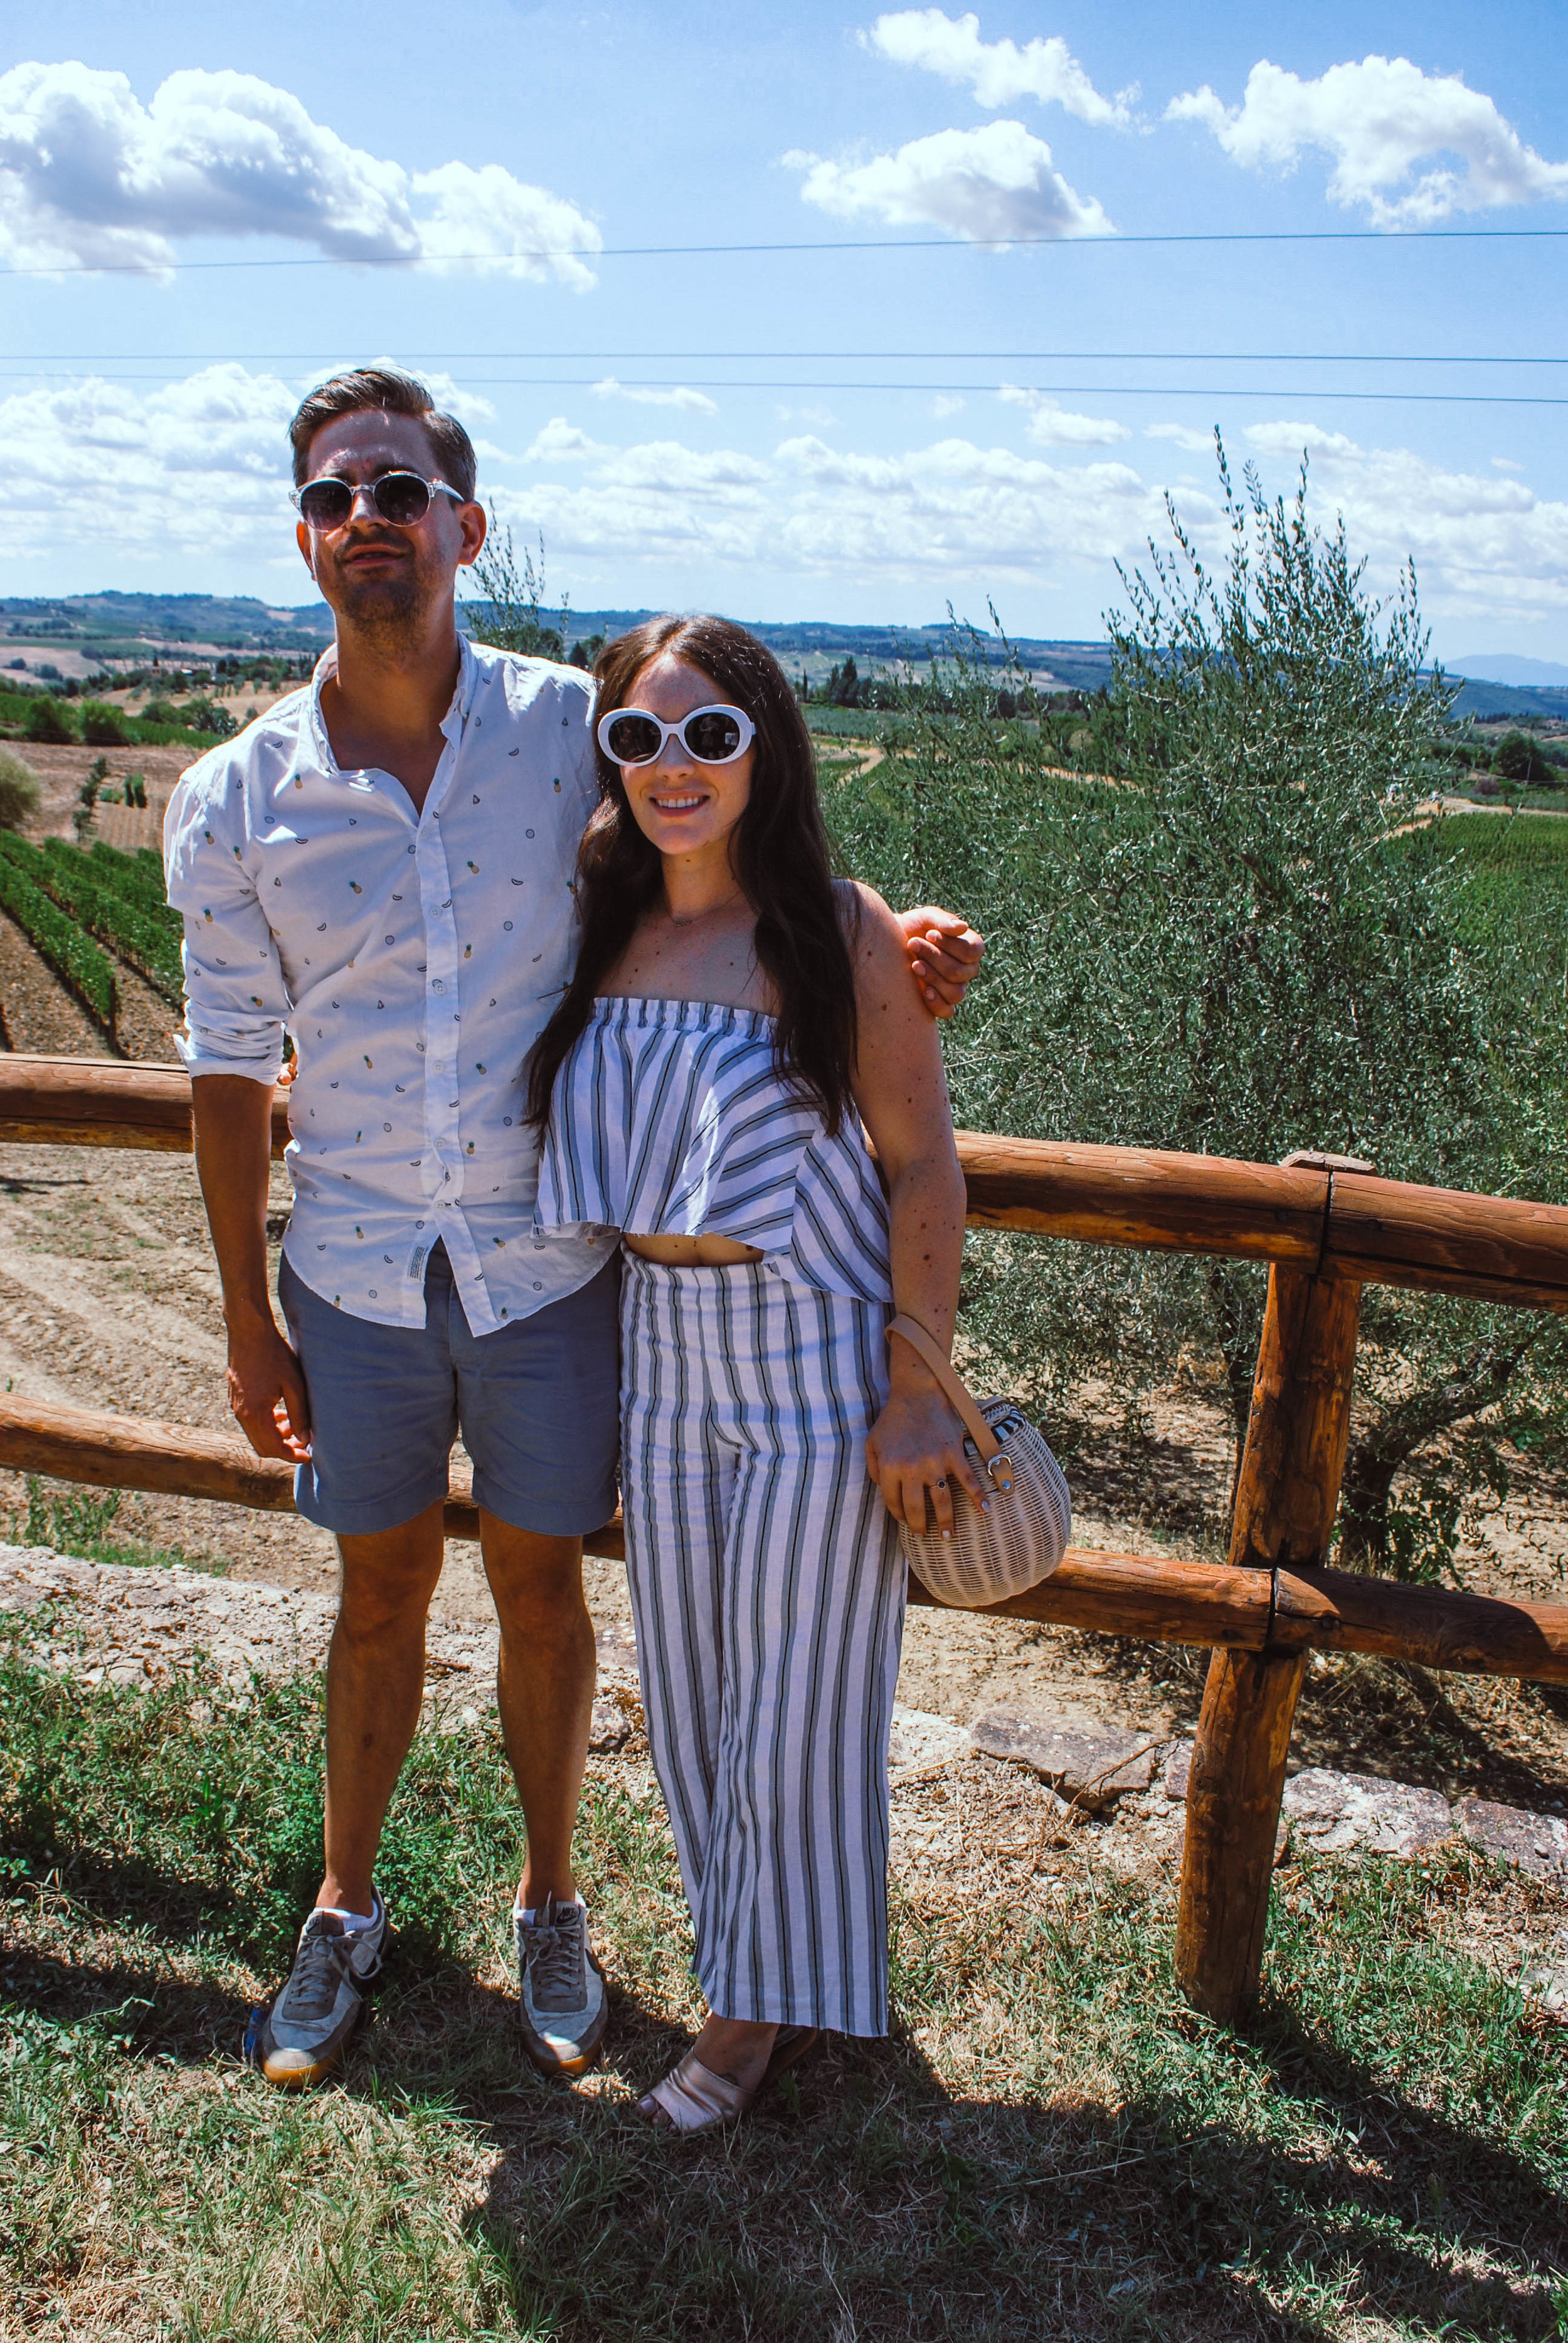 Me and my soon-to-be husband on the wine tour